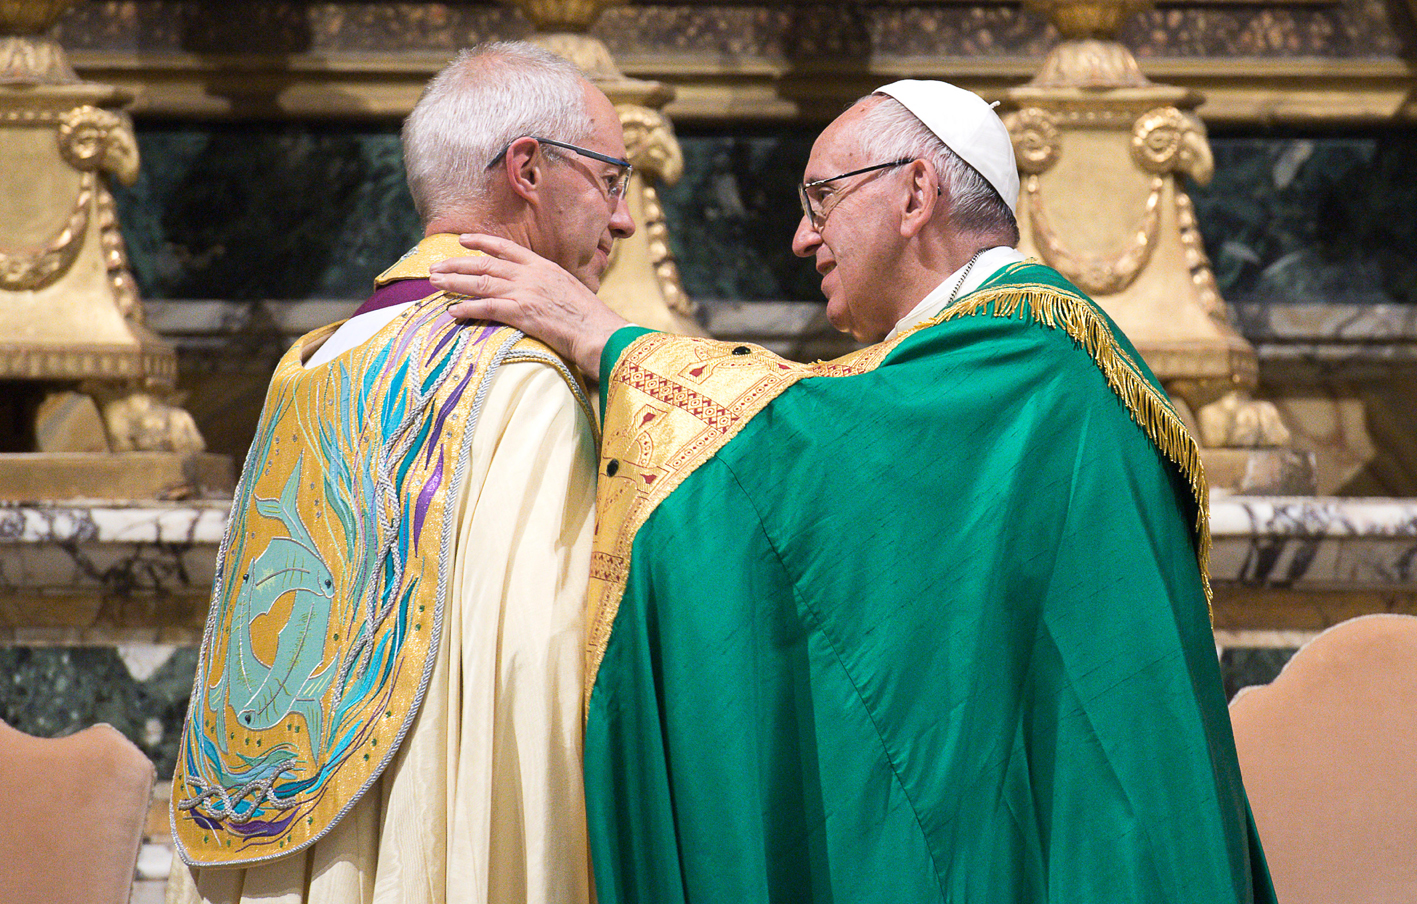 Pope Francis and Archbishop Justin Welby share a word and embrace during the Vespers at San Gregorio al Celio